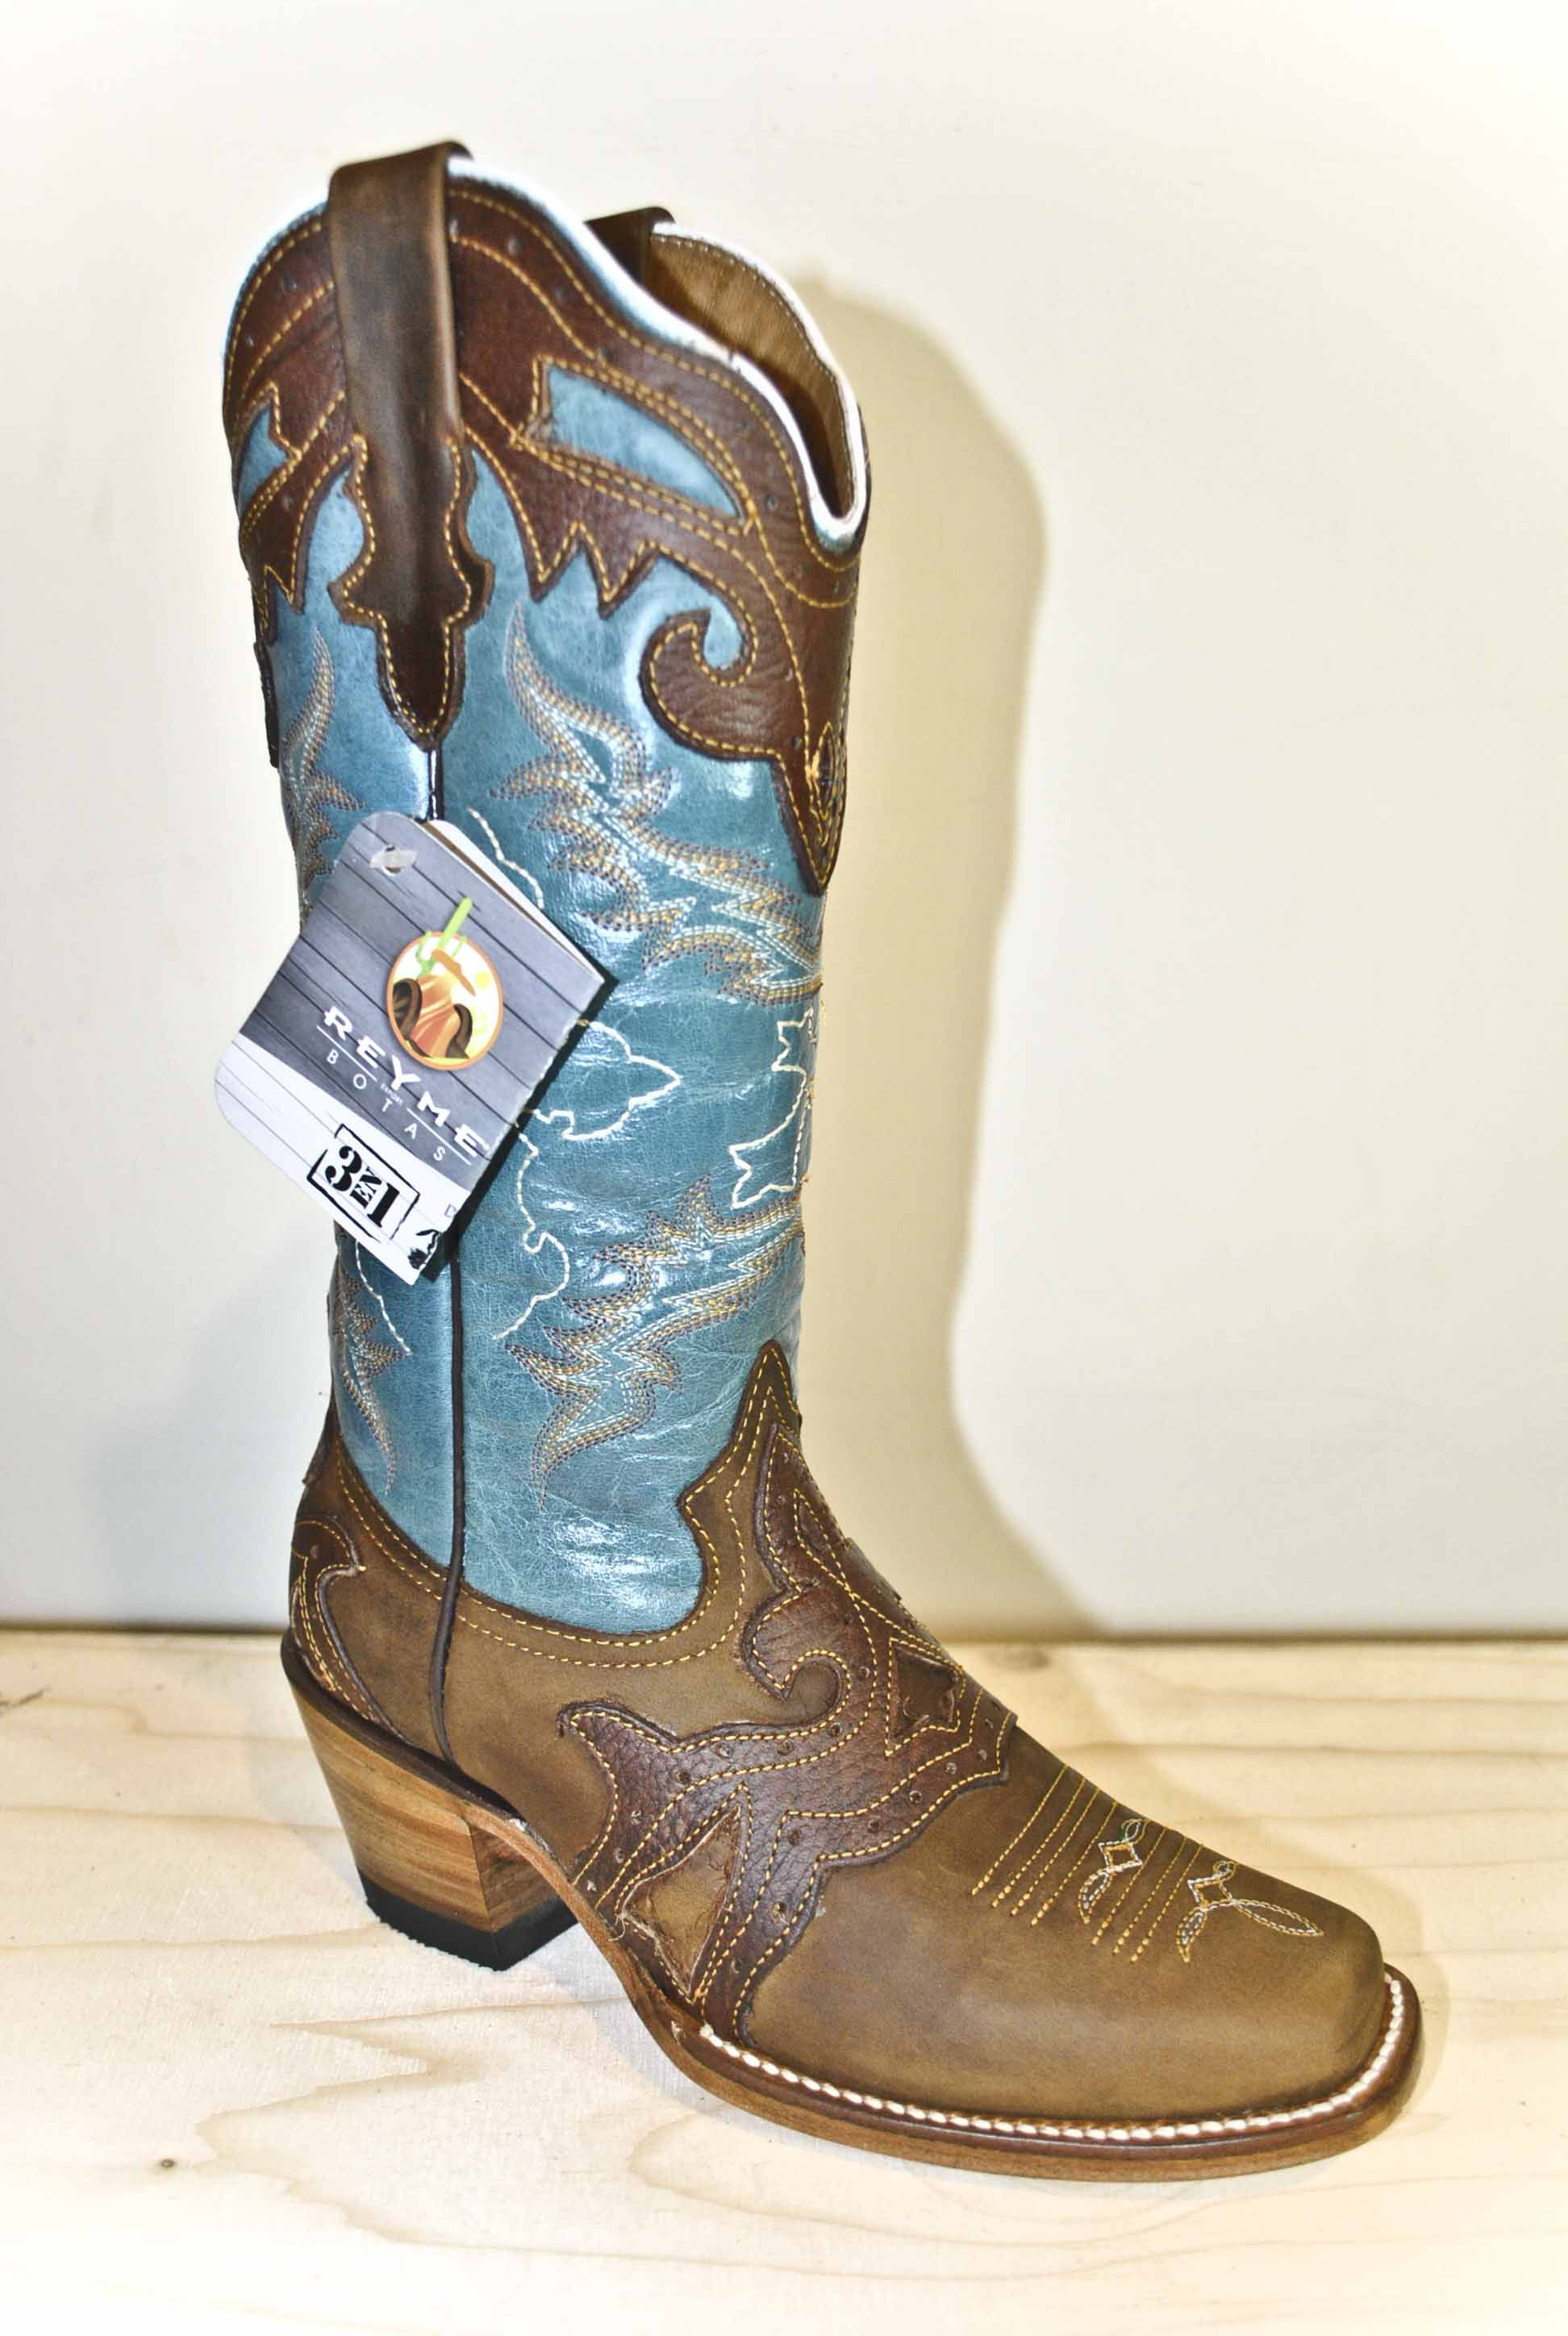 a09096b8cd7 Botas Reyme I think i am in love!!!!   These boots were made for ...